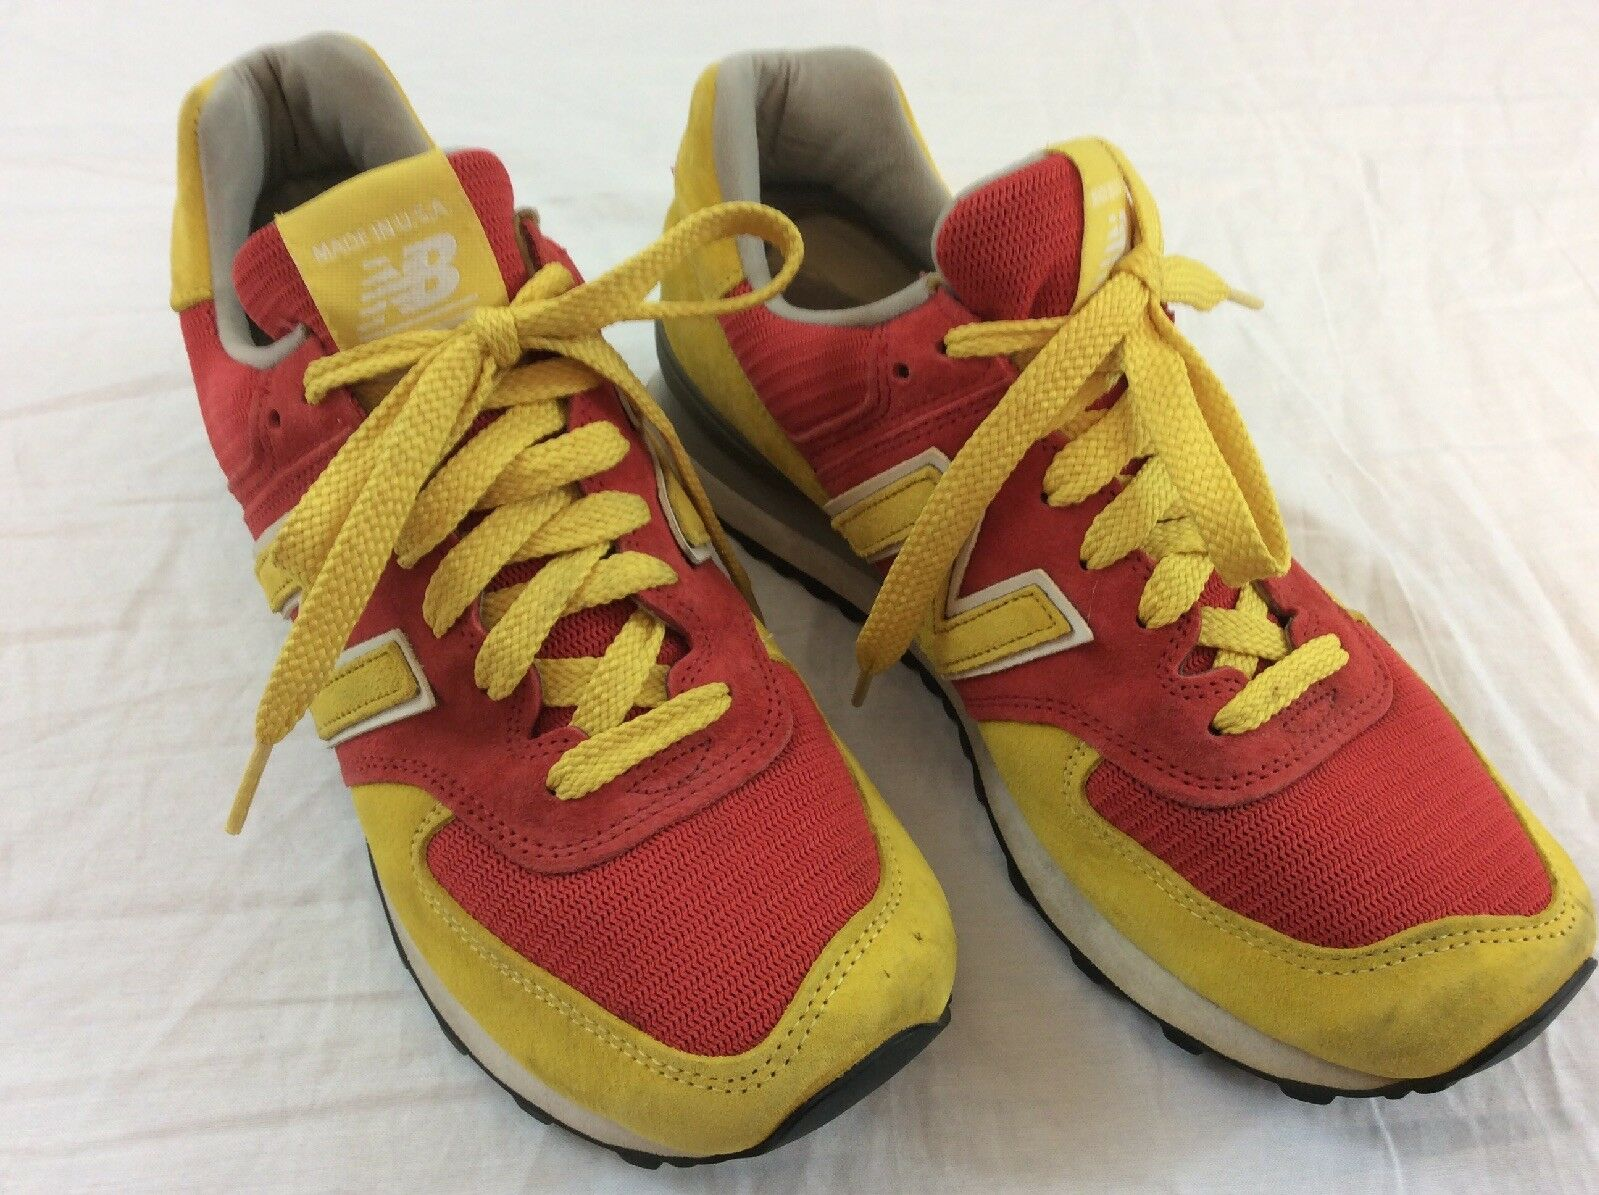 New Balance NB Mens Size 8.5 US 574 Series Yellow And Red Running shoes 2013